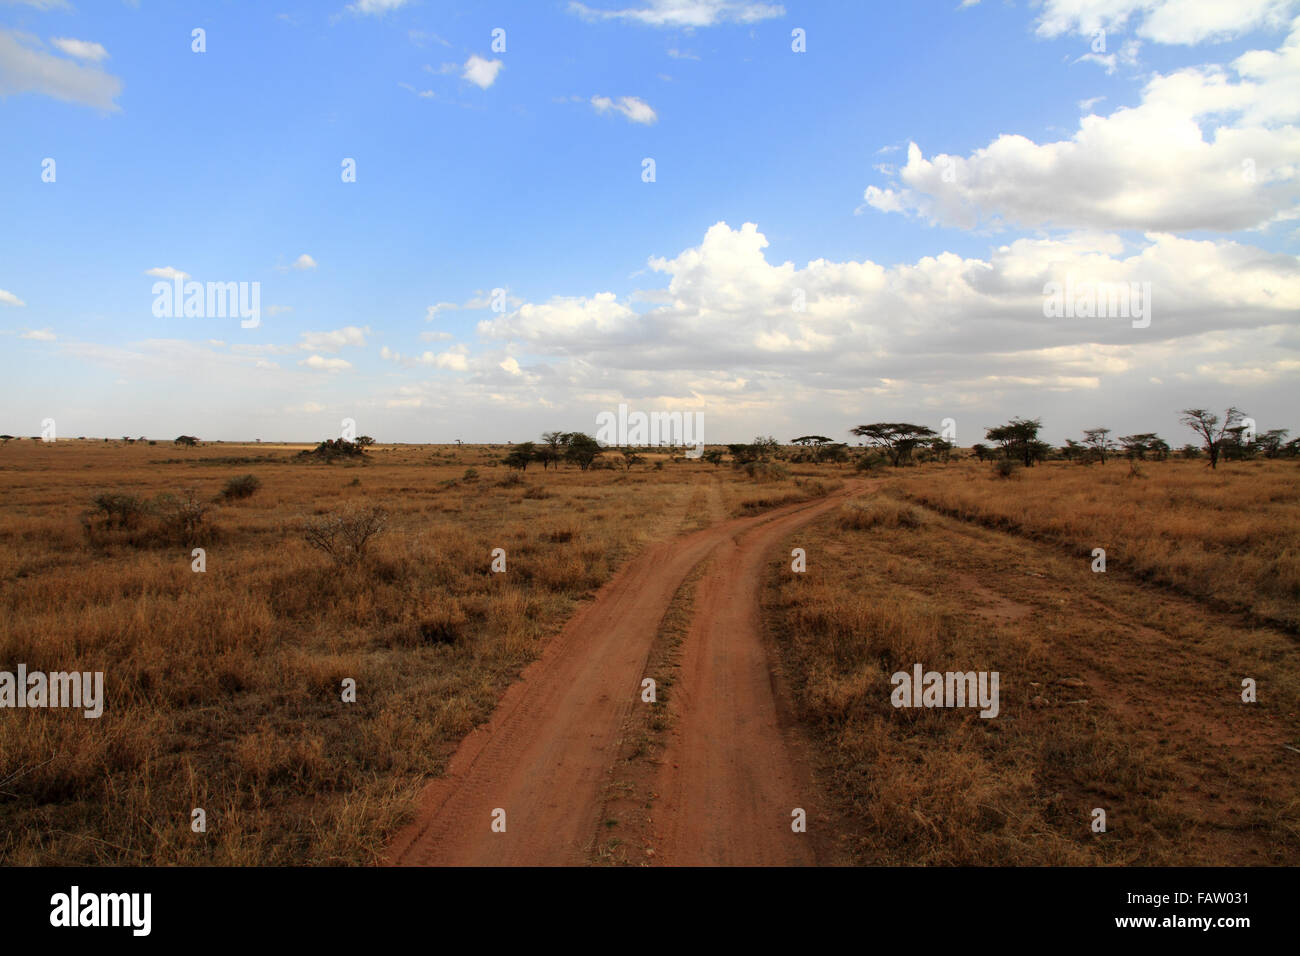 A dirt road through the Serengeti - Stock Image